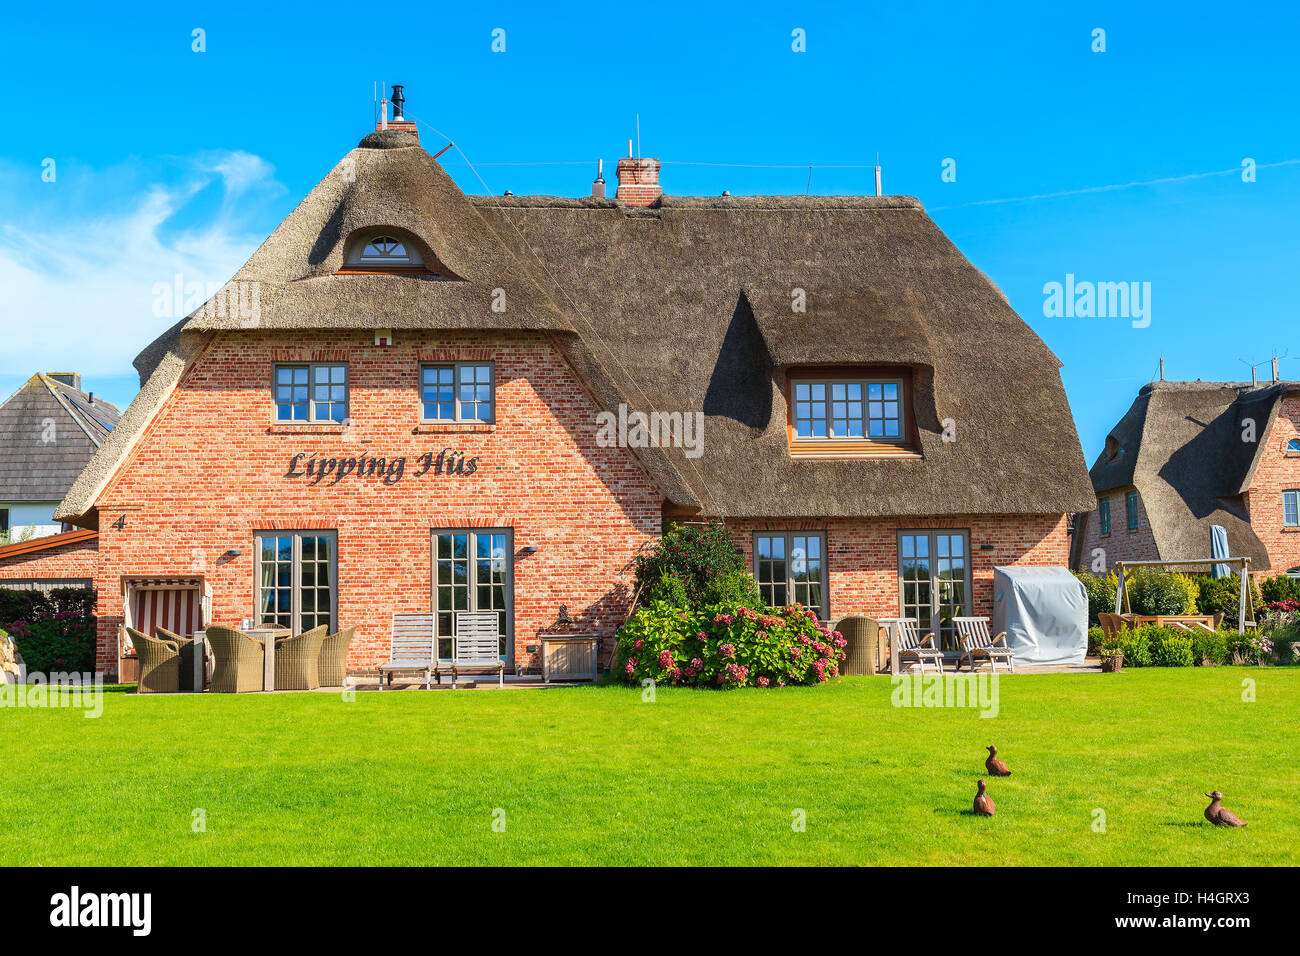 Sylt island germany sep 11 2016 traditional house with thatched stock photo royalty free - Traditional houses attic ...